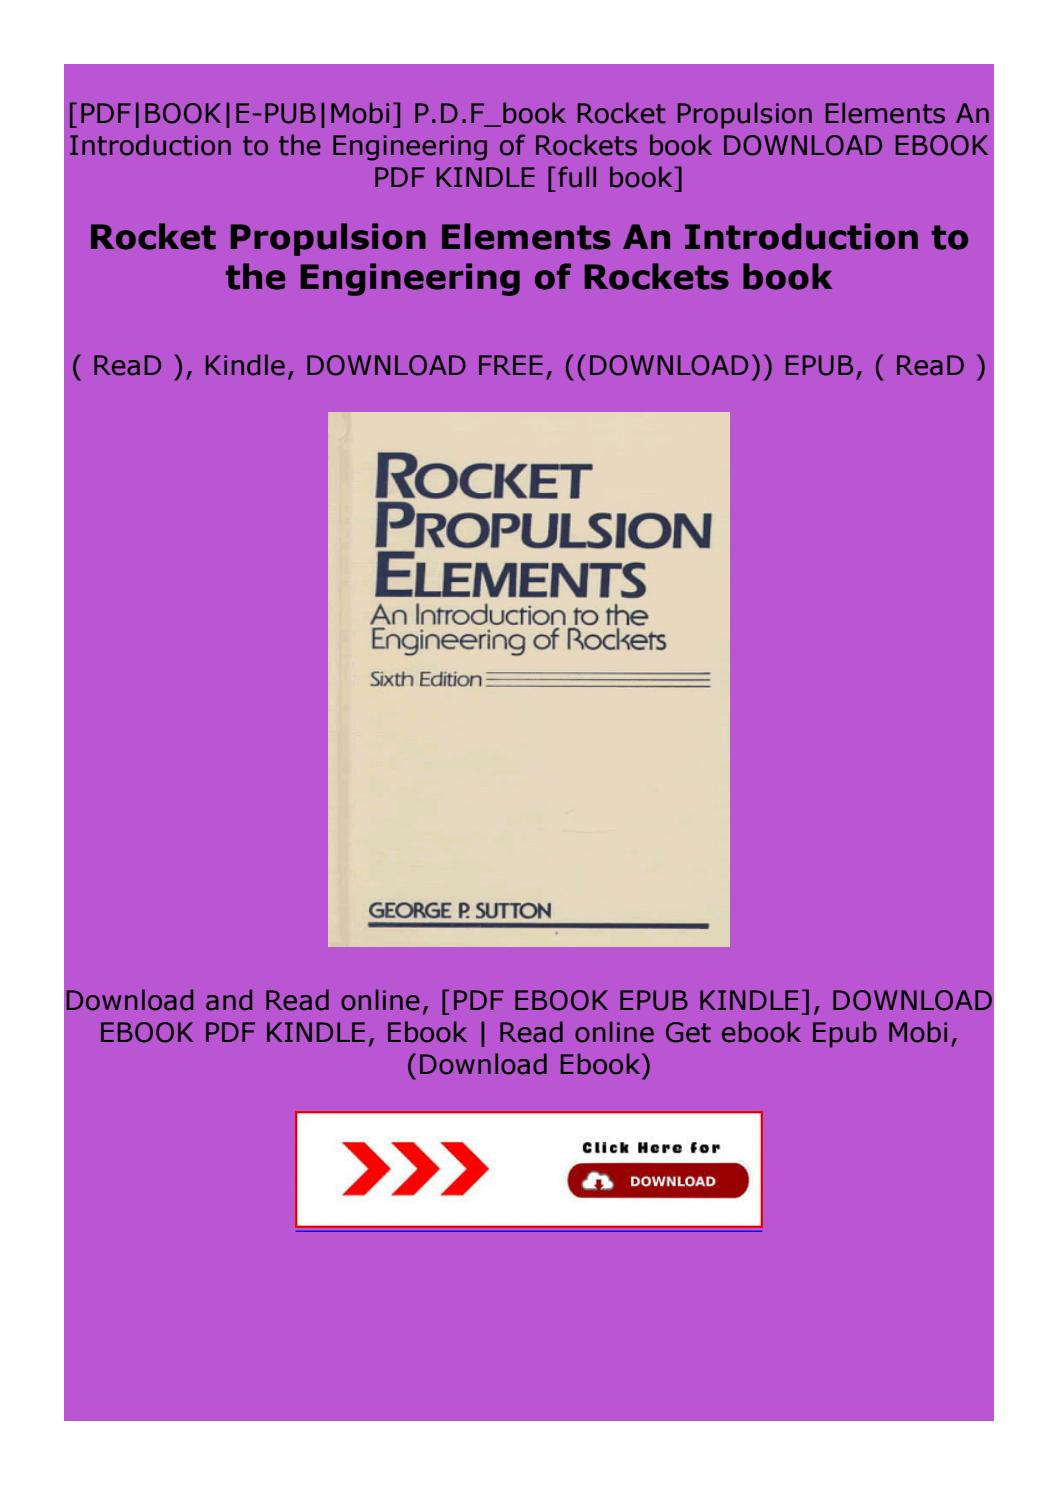 Paperback Rocket Propulsion Elements An Introduction To The Engineering Of Rockets Book By Cszvxfbgtxvzxzerdx Issuu